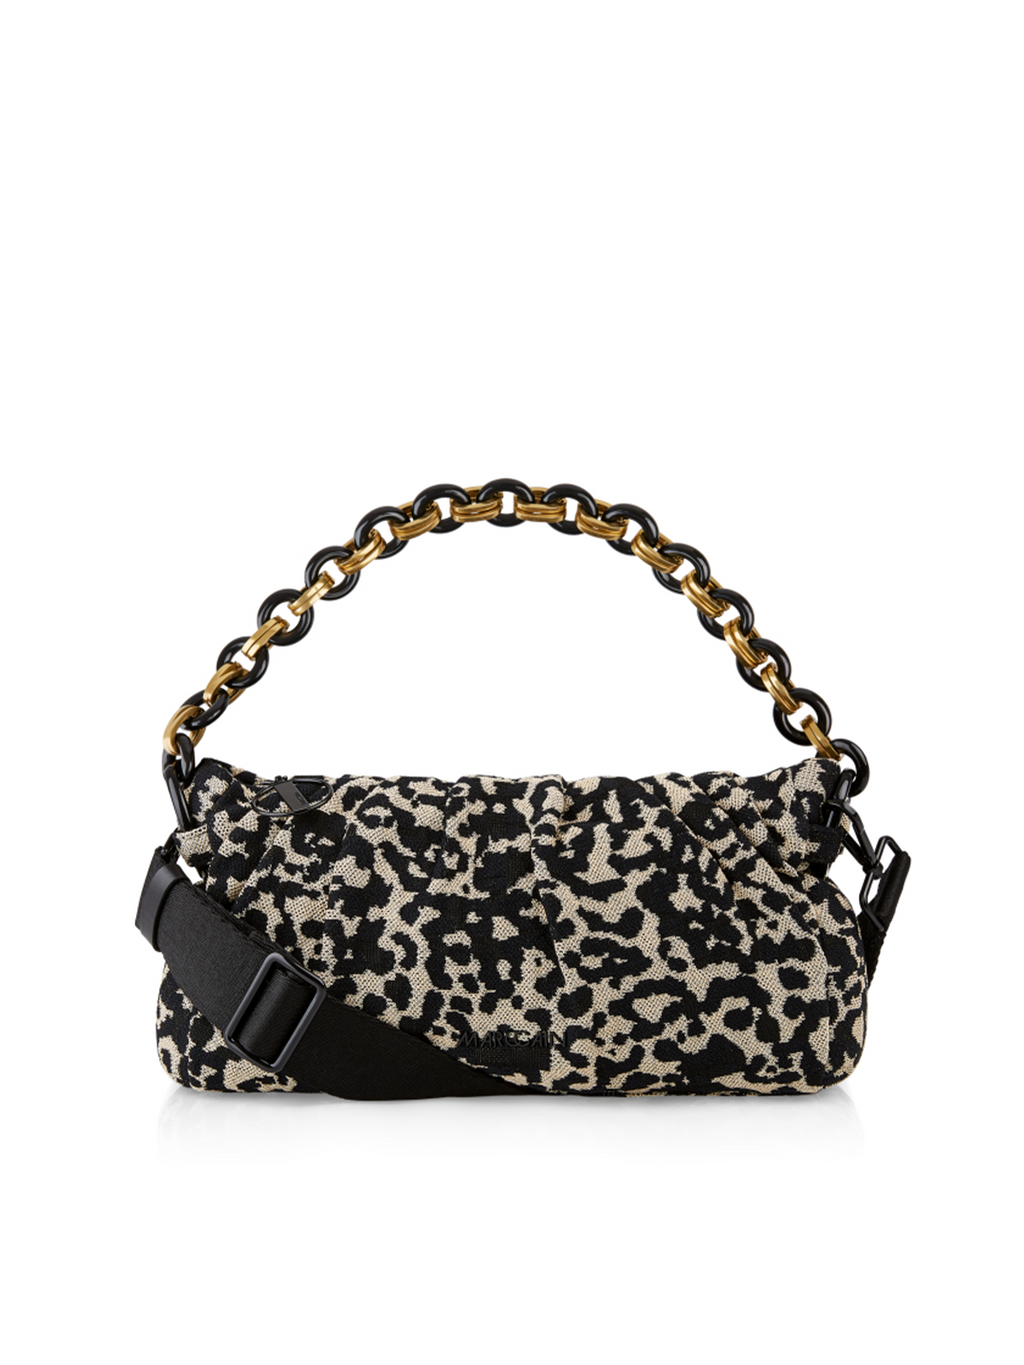 Marc Cain Satchel Handbag with Leopard Pattern - Pre-Order